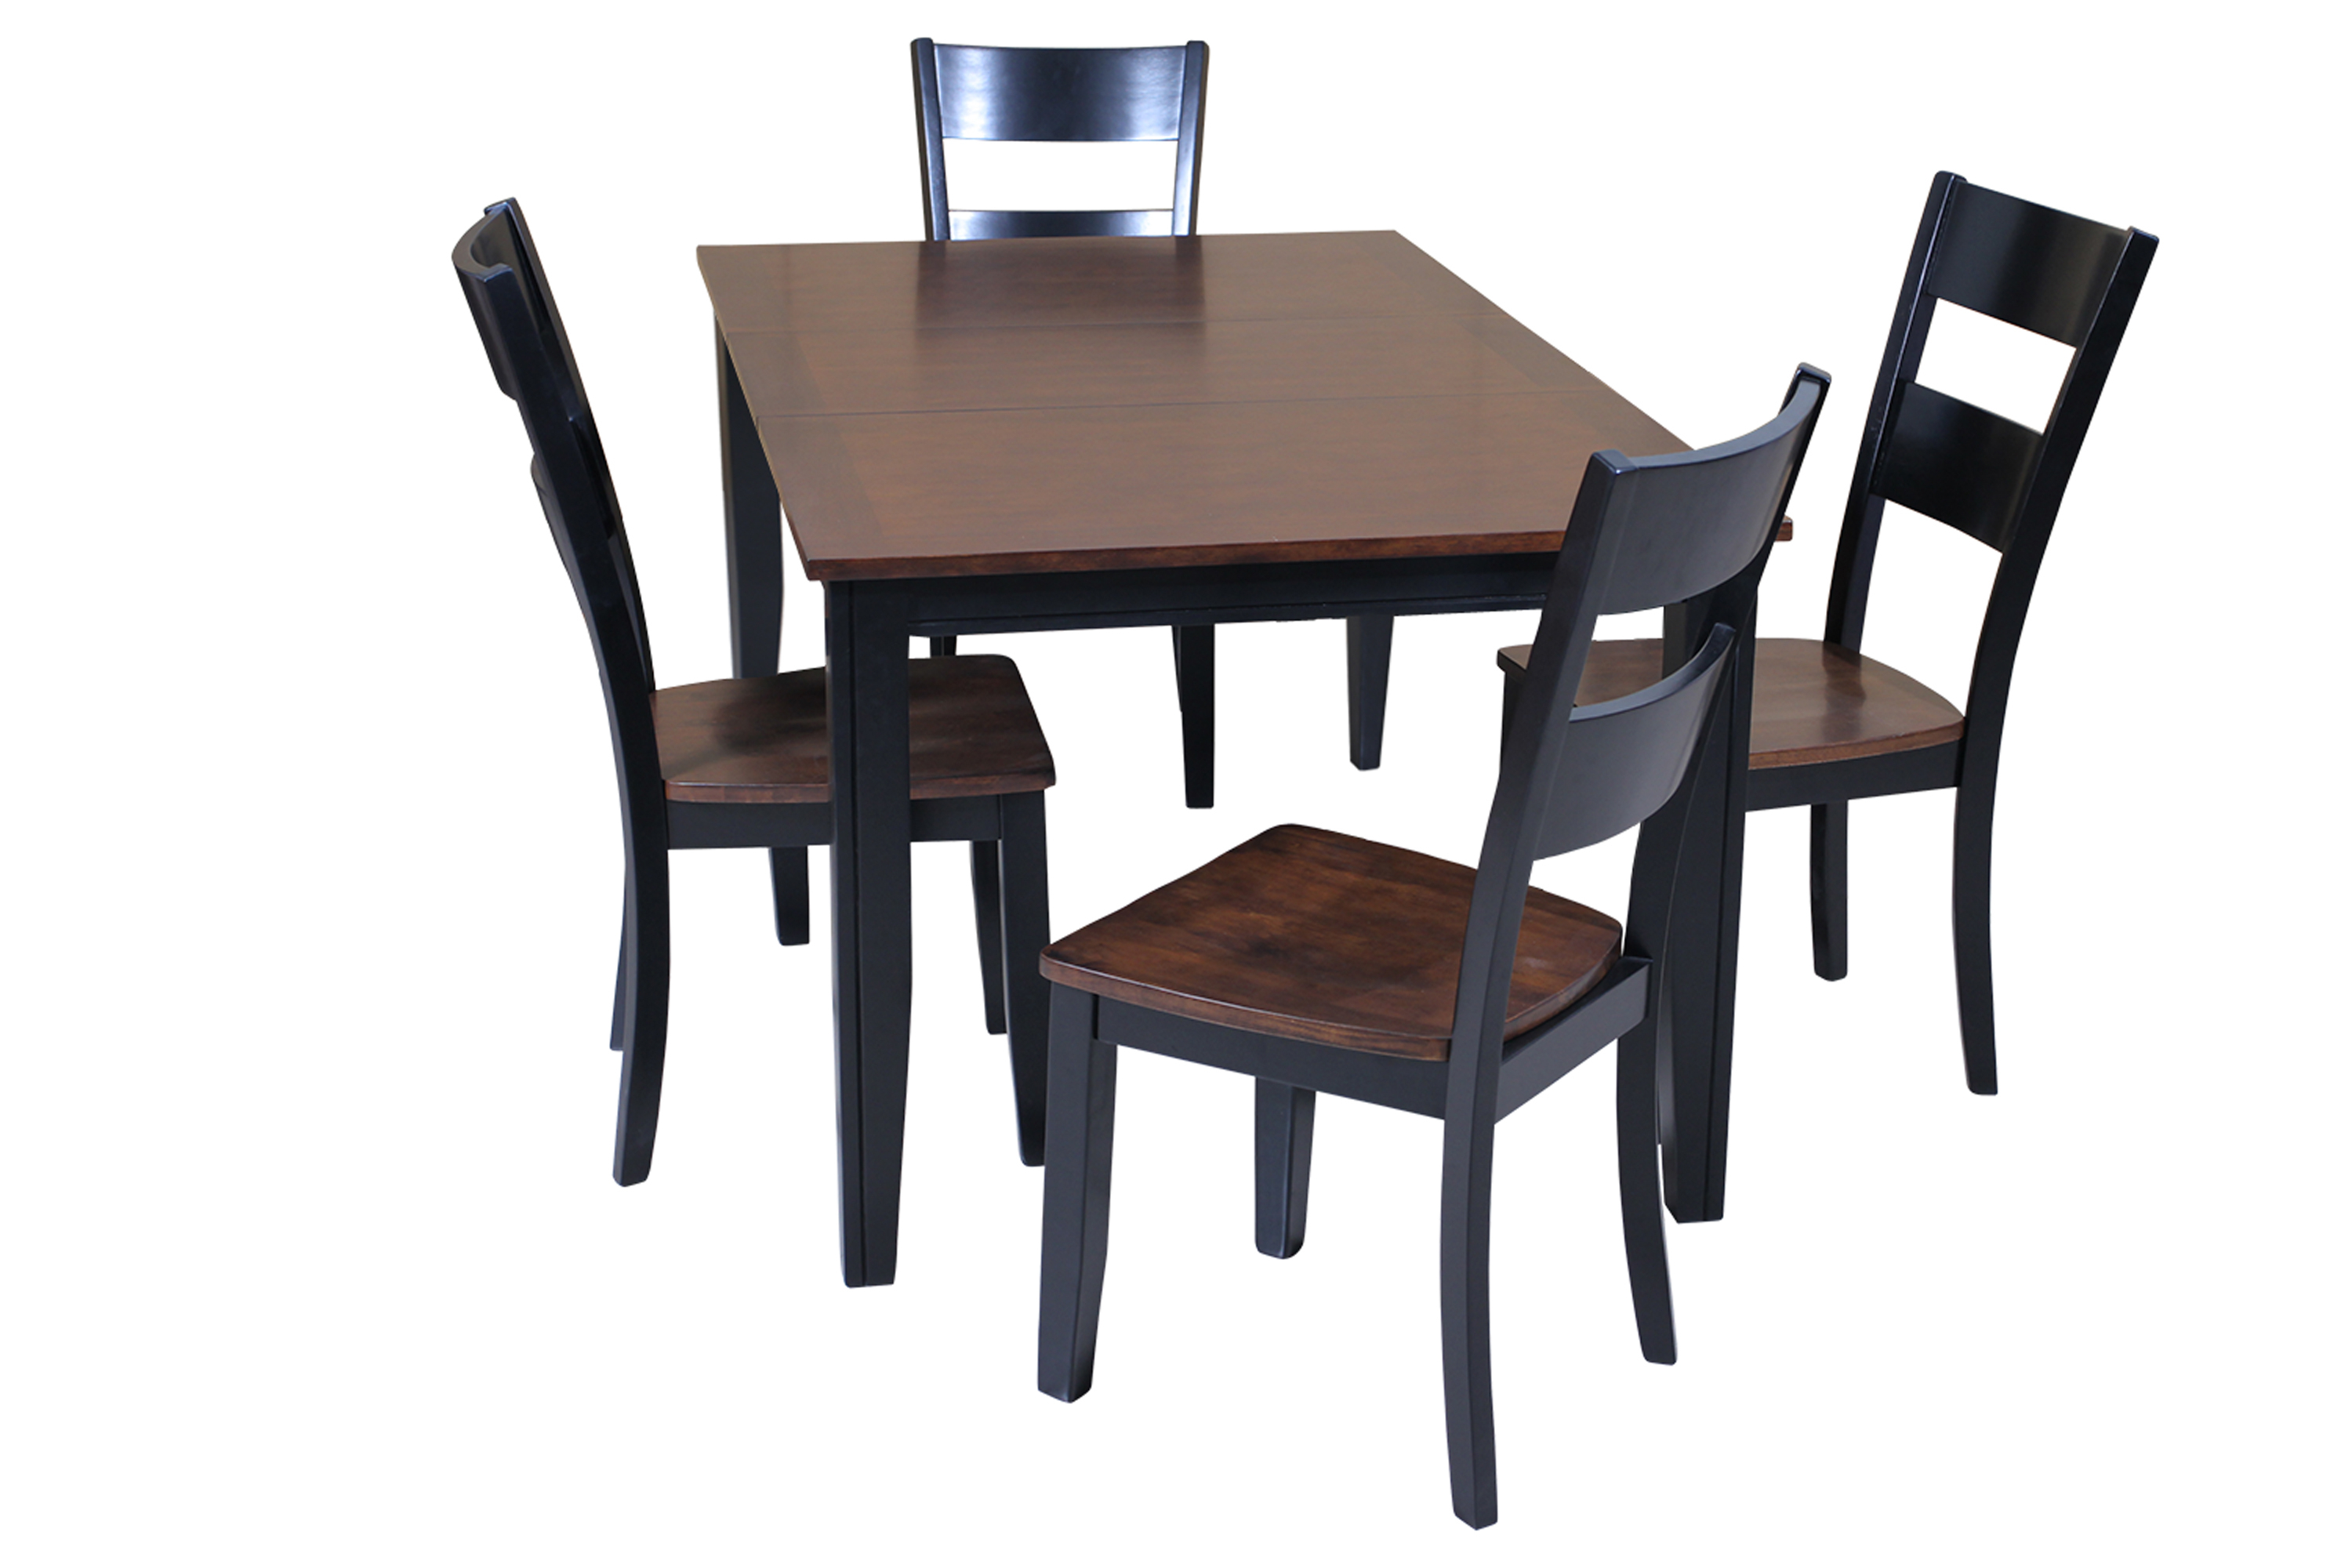 Ttp Furnish With 2017 Adan 5 Piece Solid Wood Dining Sets (Set Of 5) (Image 20 of 20)